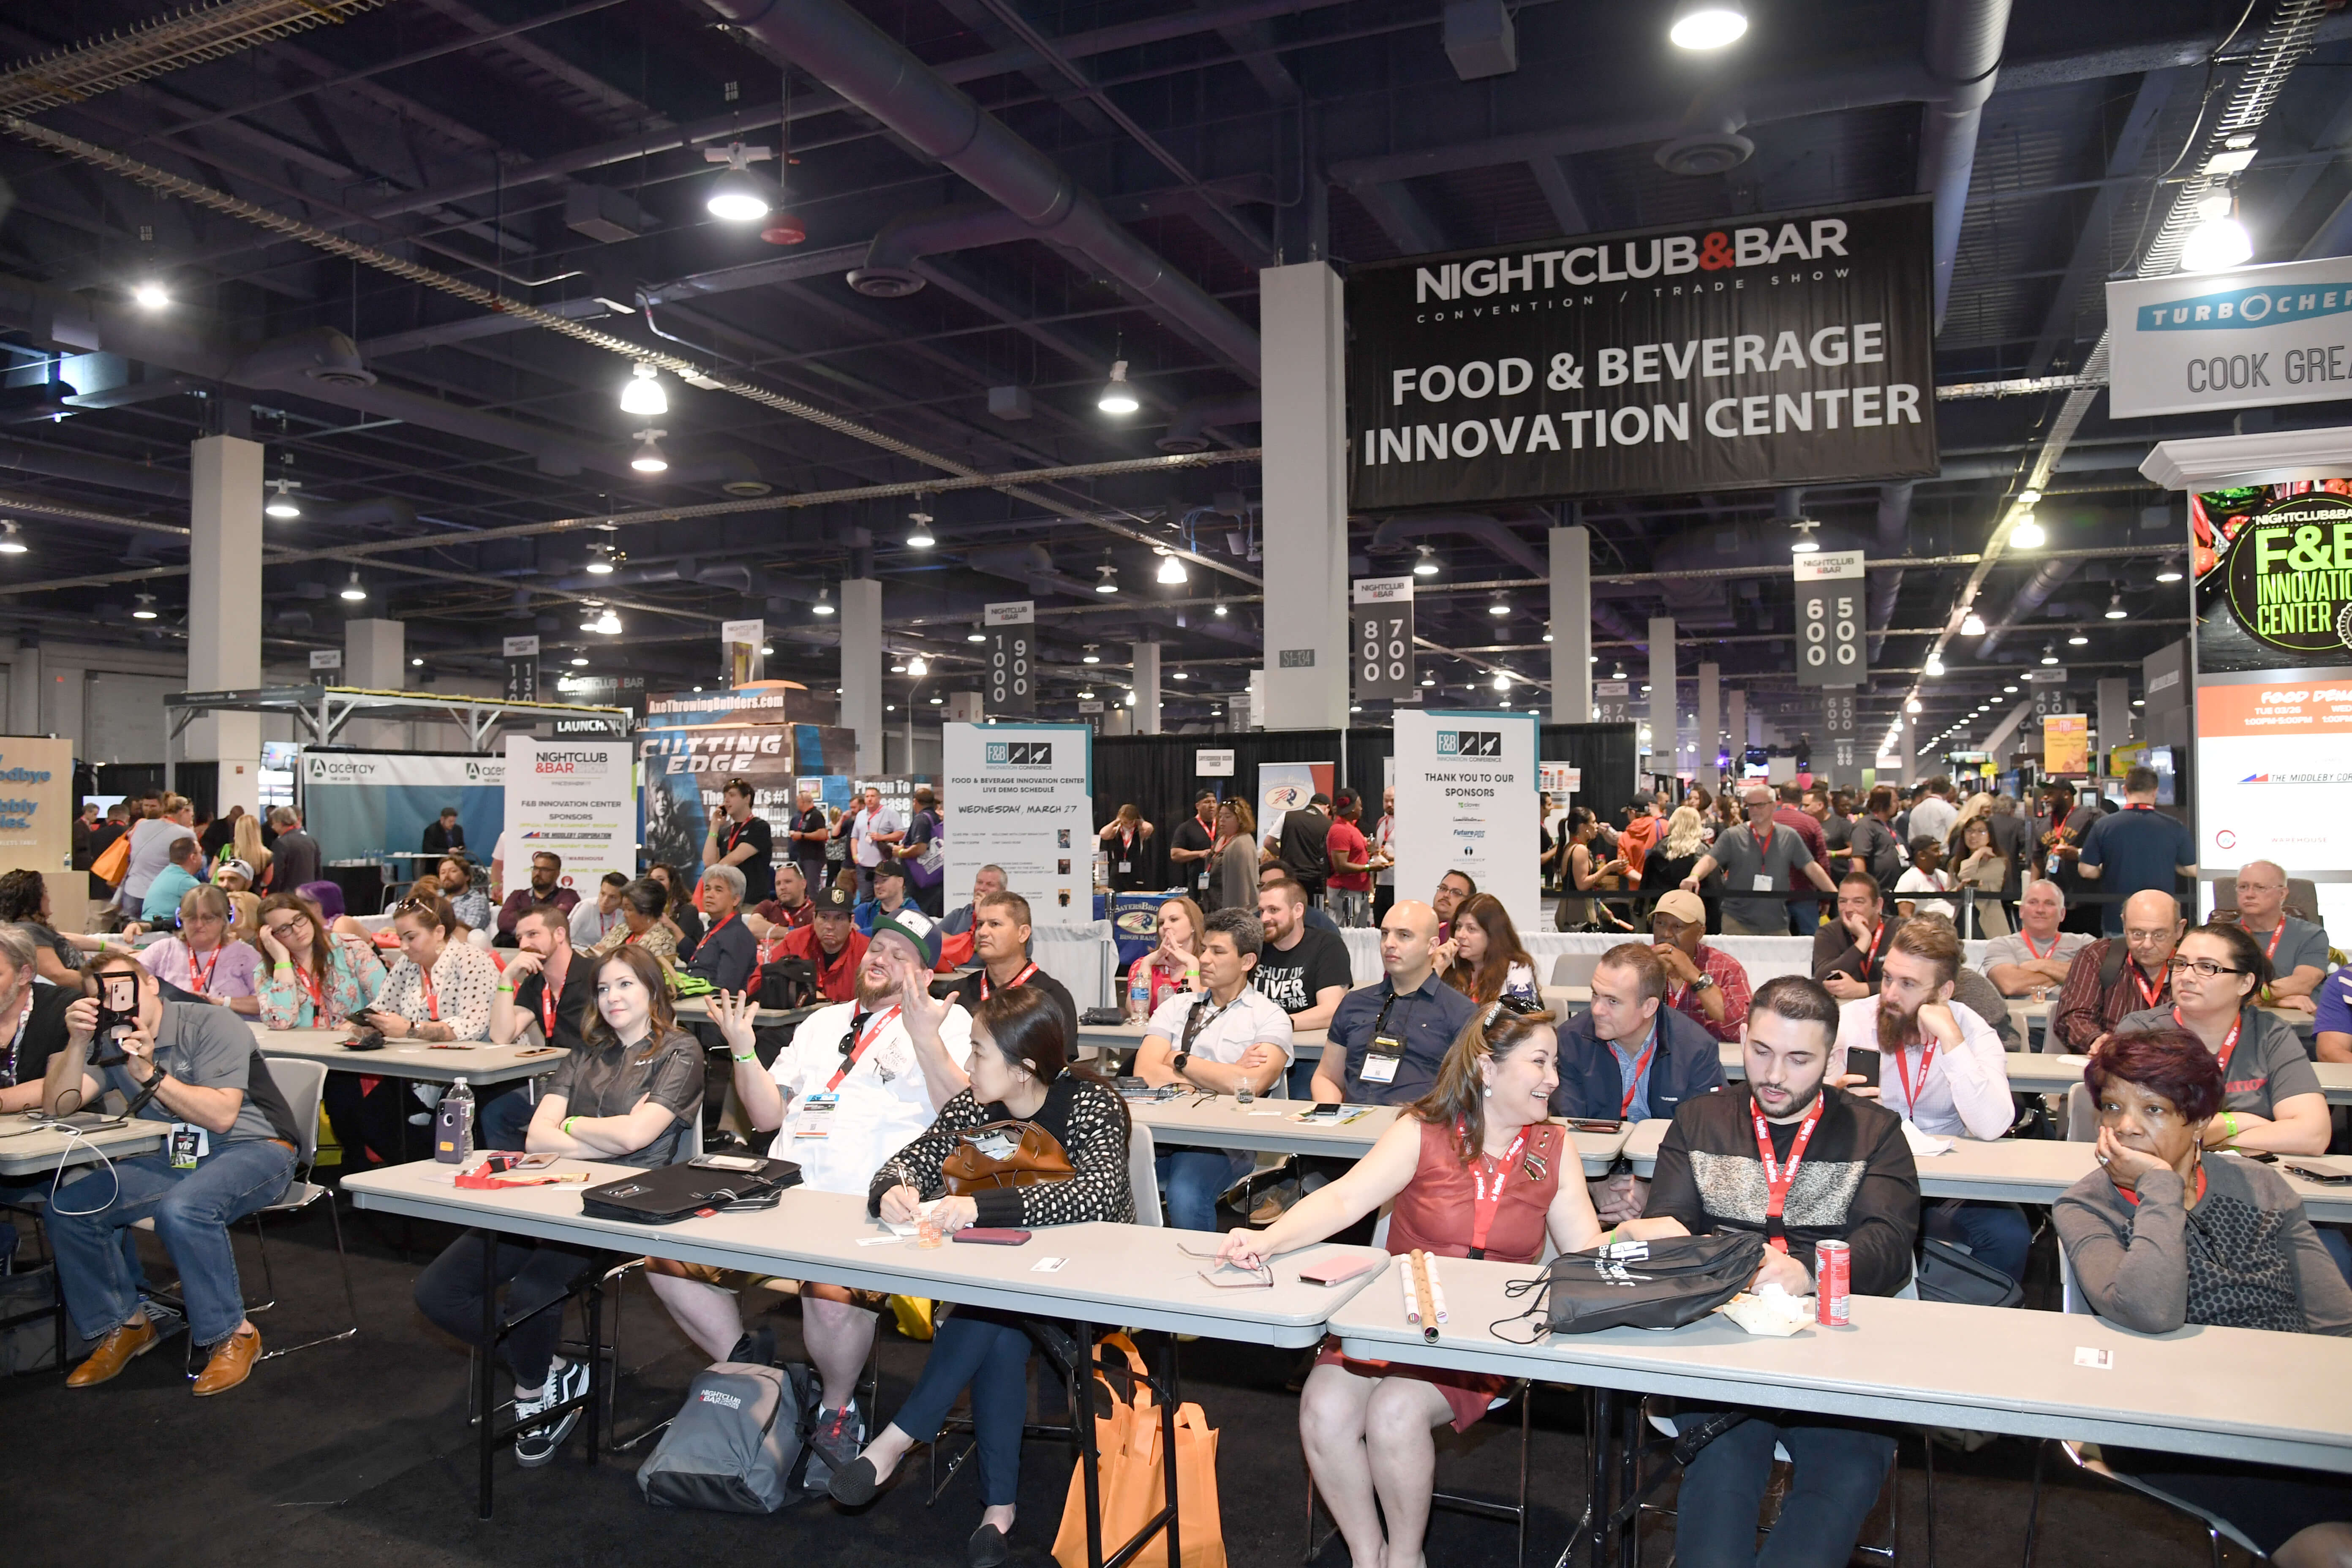 Nightclub and bar show 2020 sponsors   participants at f&b innovation center   nightclub and bar show 2020